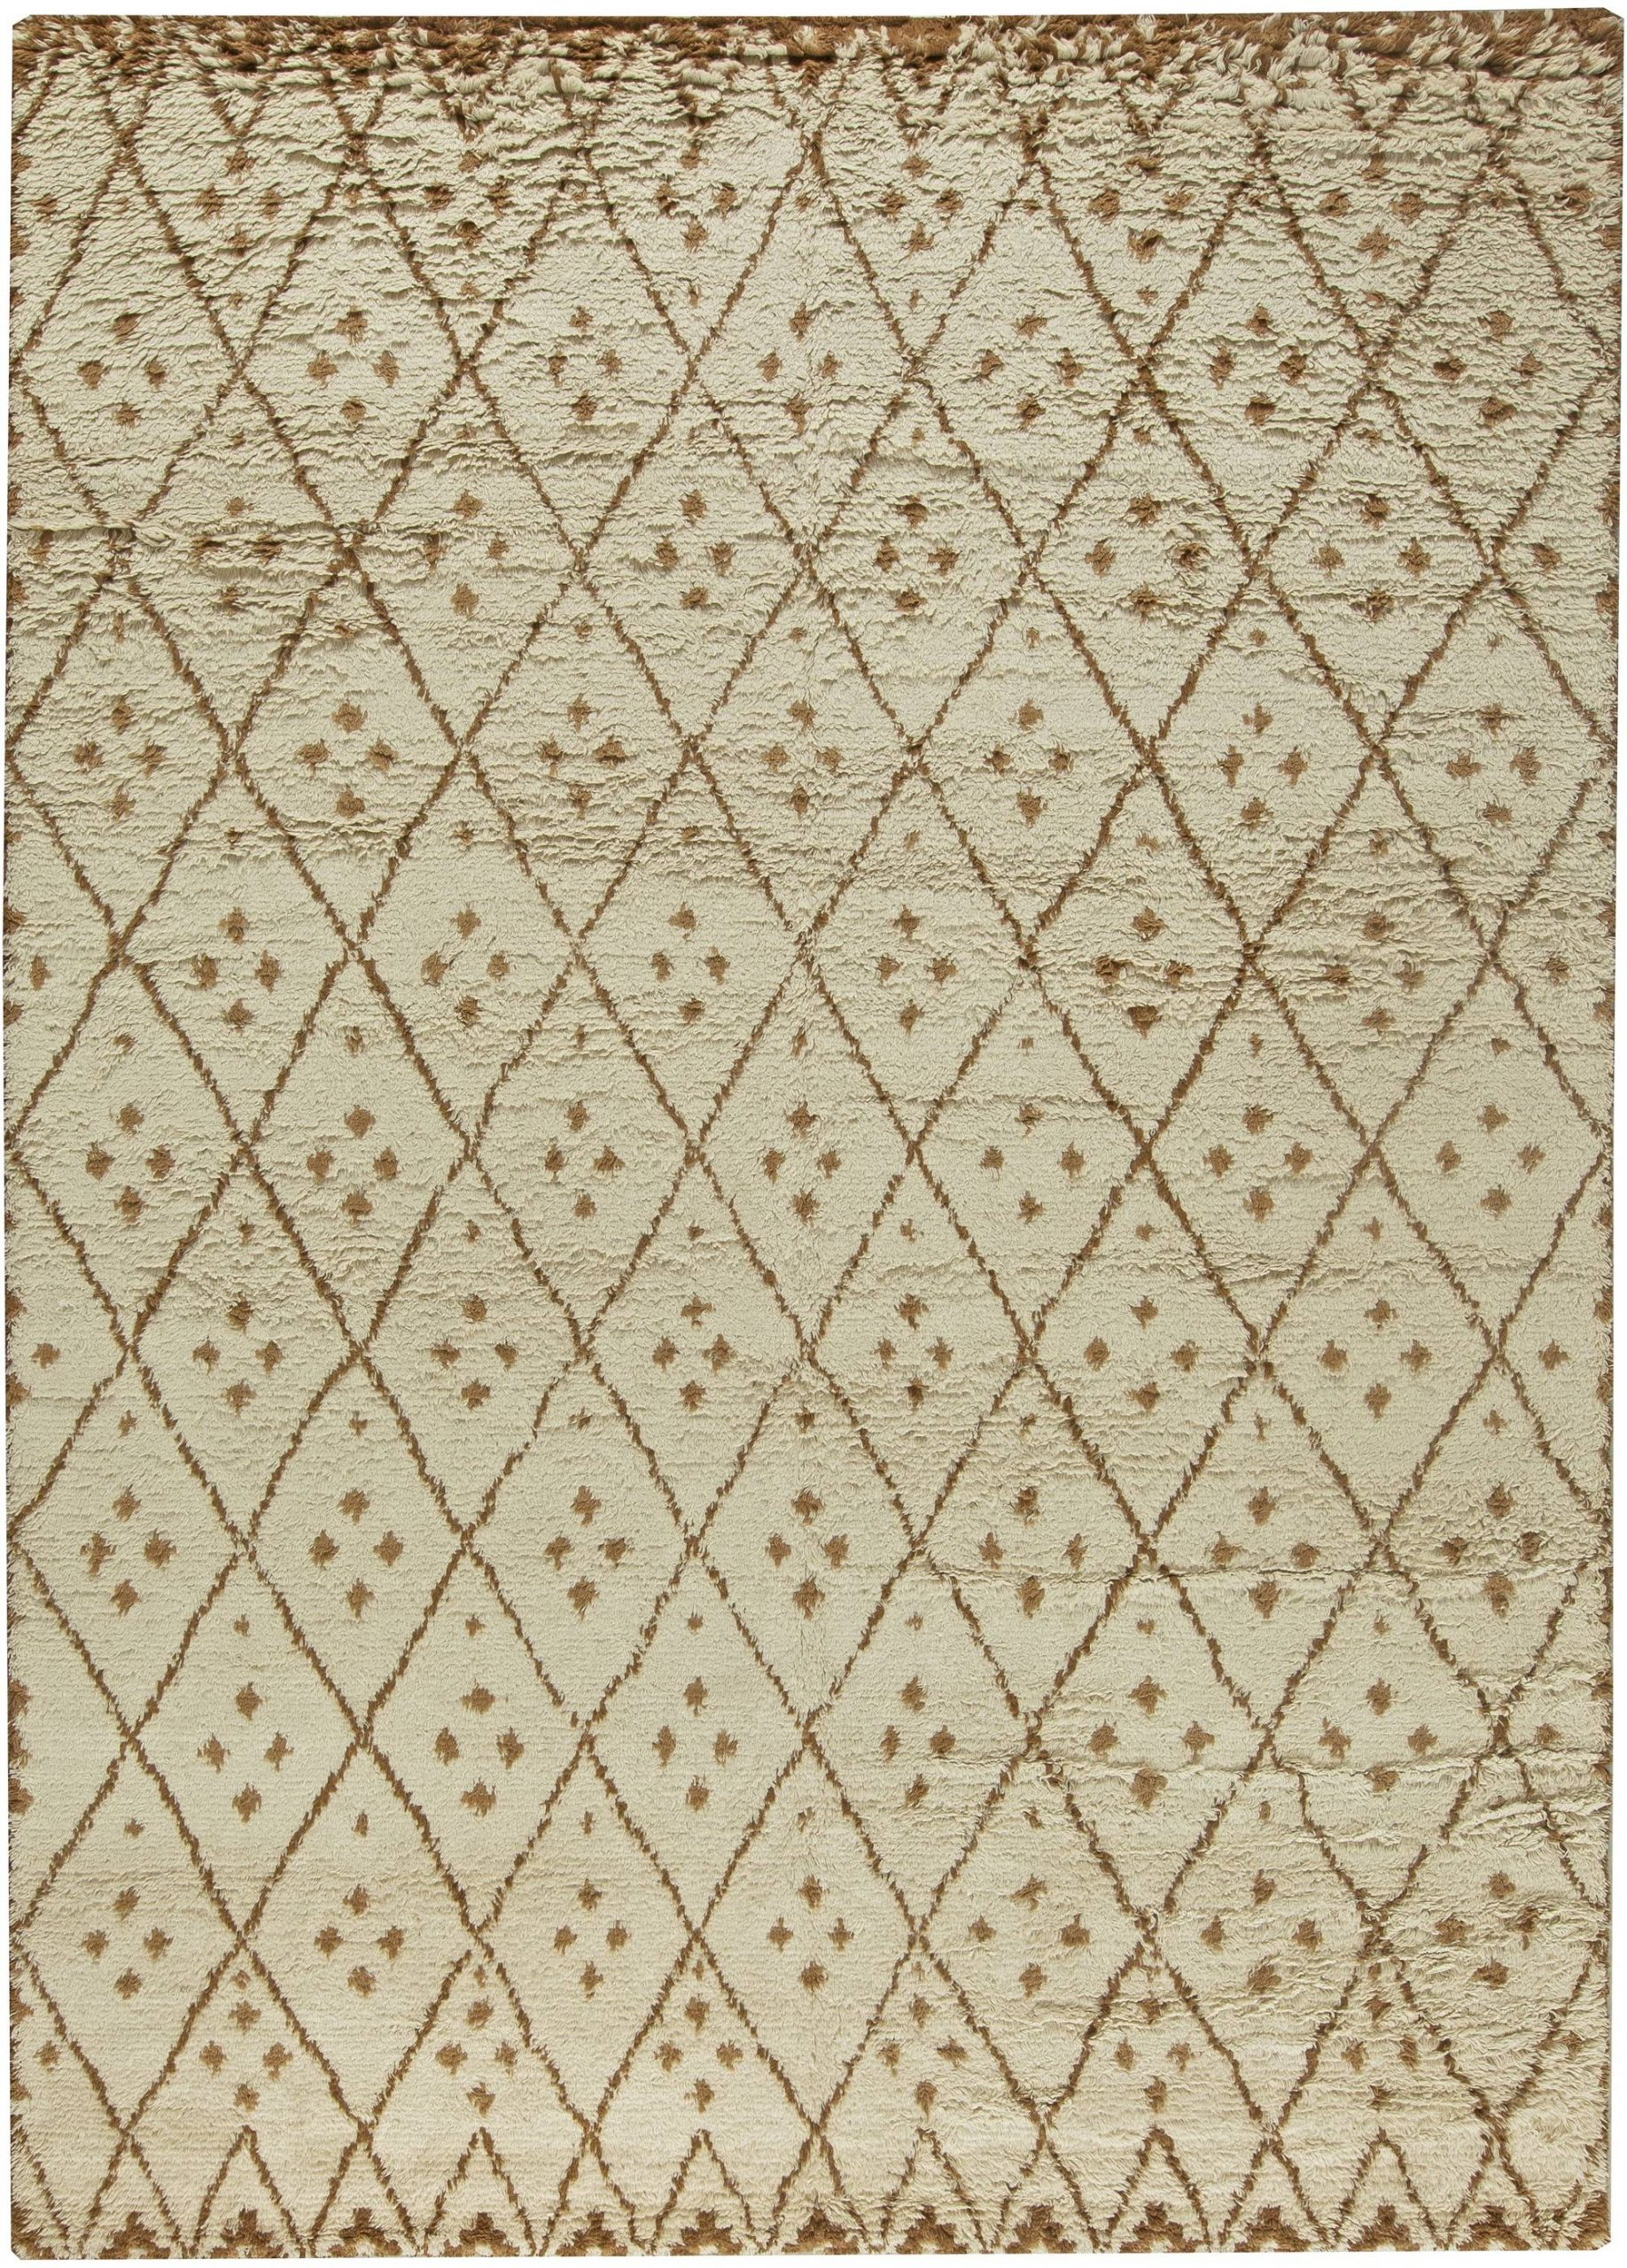 Hygge Up For Winter: Introducing Shaggy Rya Rugs and Beni Ourains